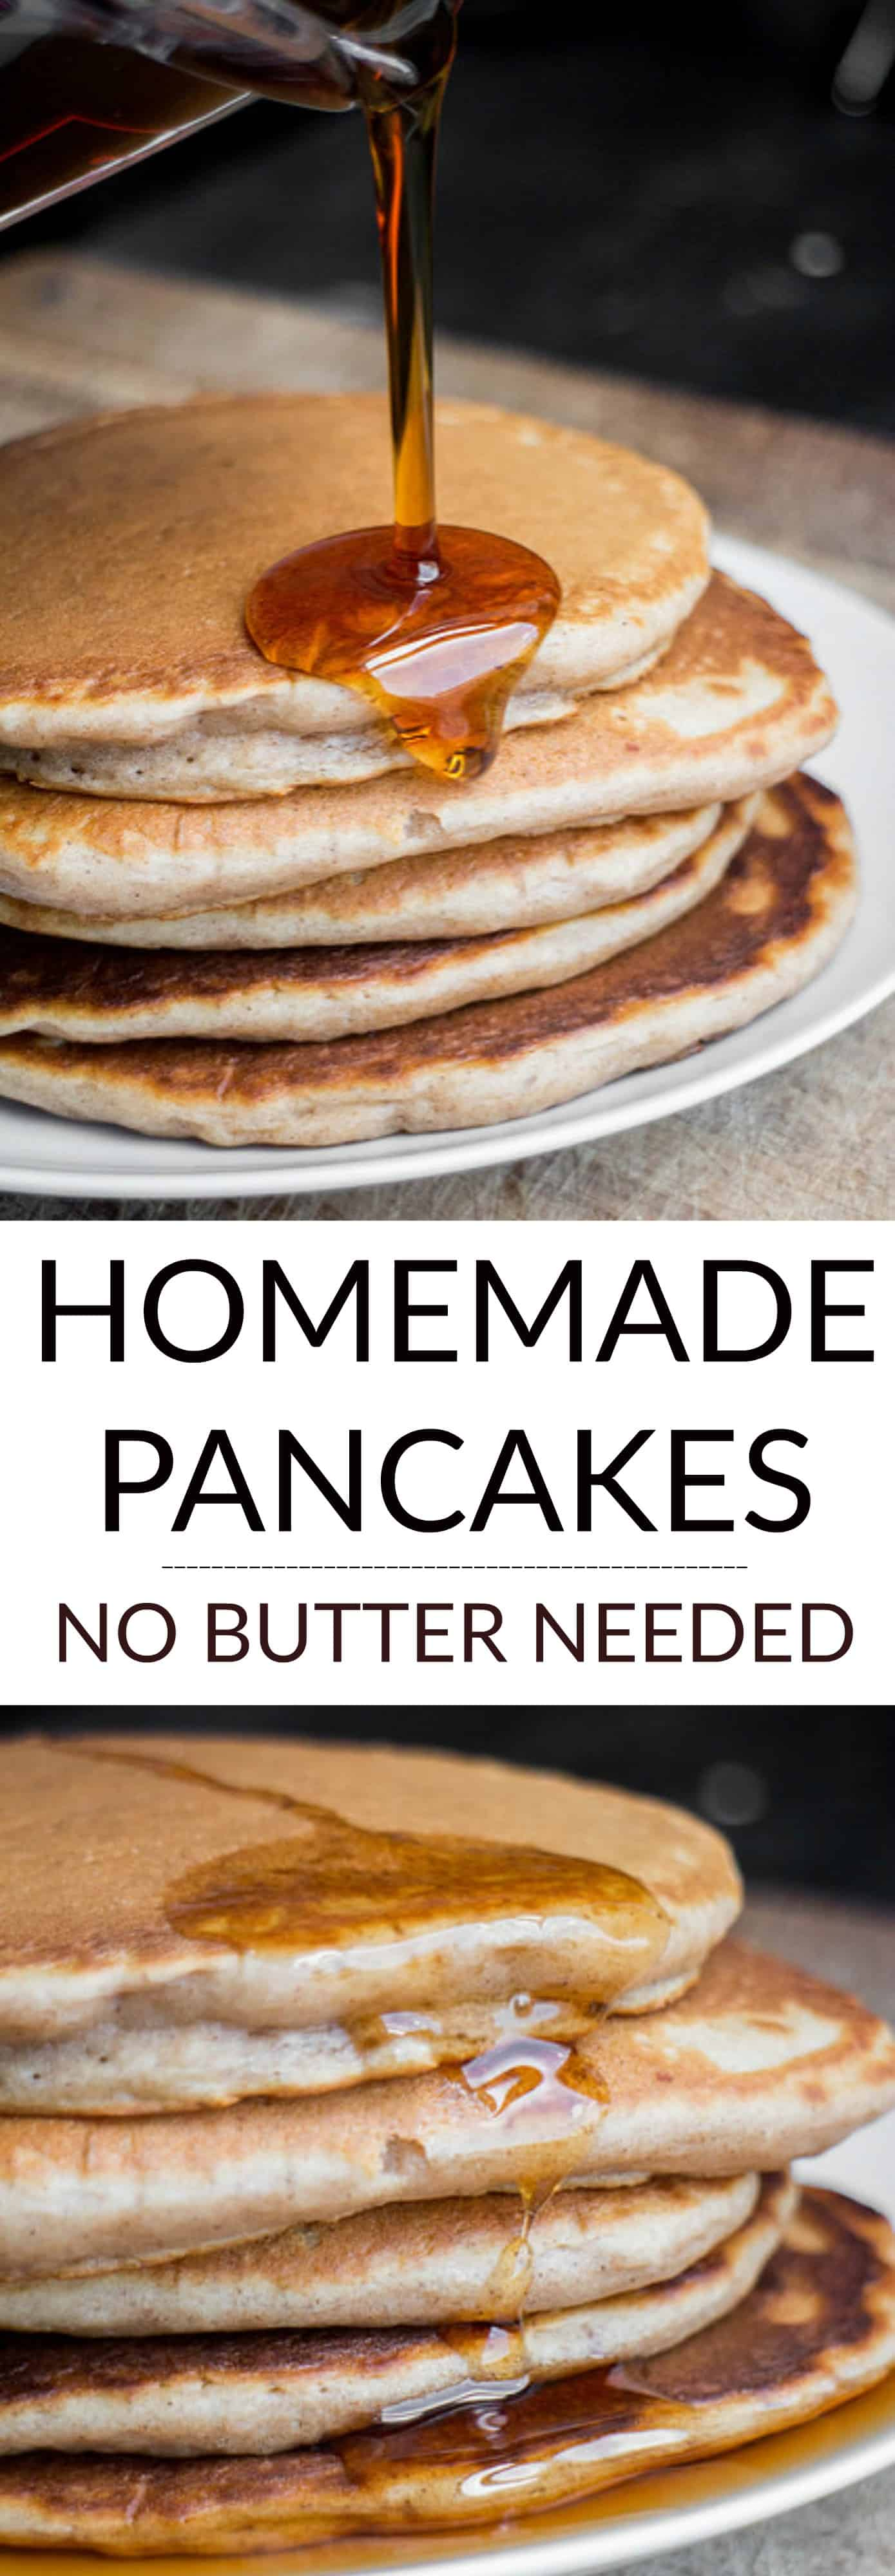 NO BUTTER Homemade Pancakes recipe are fluffy and so easy to make!  They're so good you won't miss the butter at all, that makes them more healthy too!   These made from scratch pancakes are my favorite Saturday morning breakfast, my family considers them the best!  Dairy Free/Vegan too!